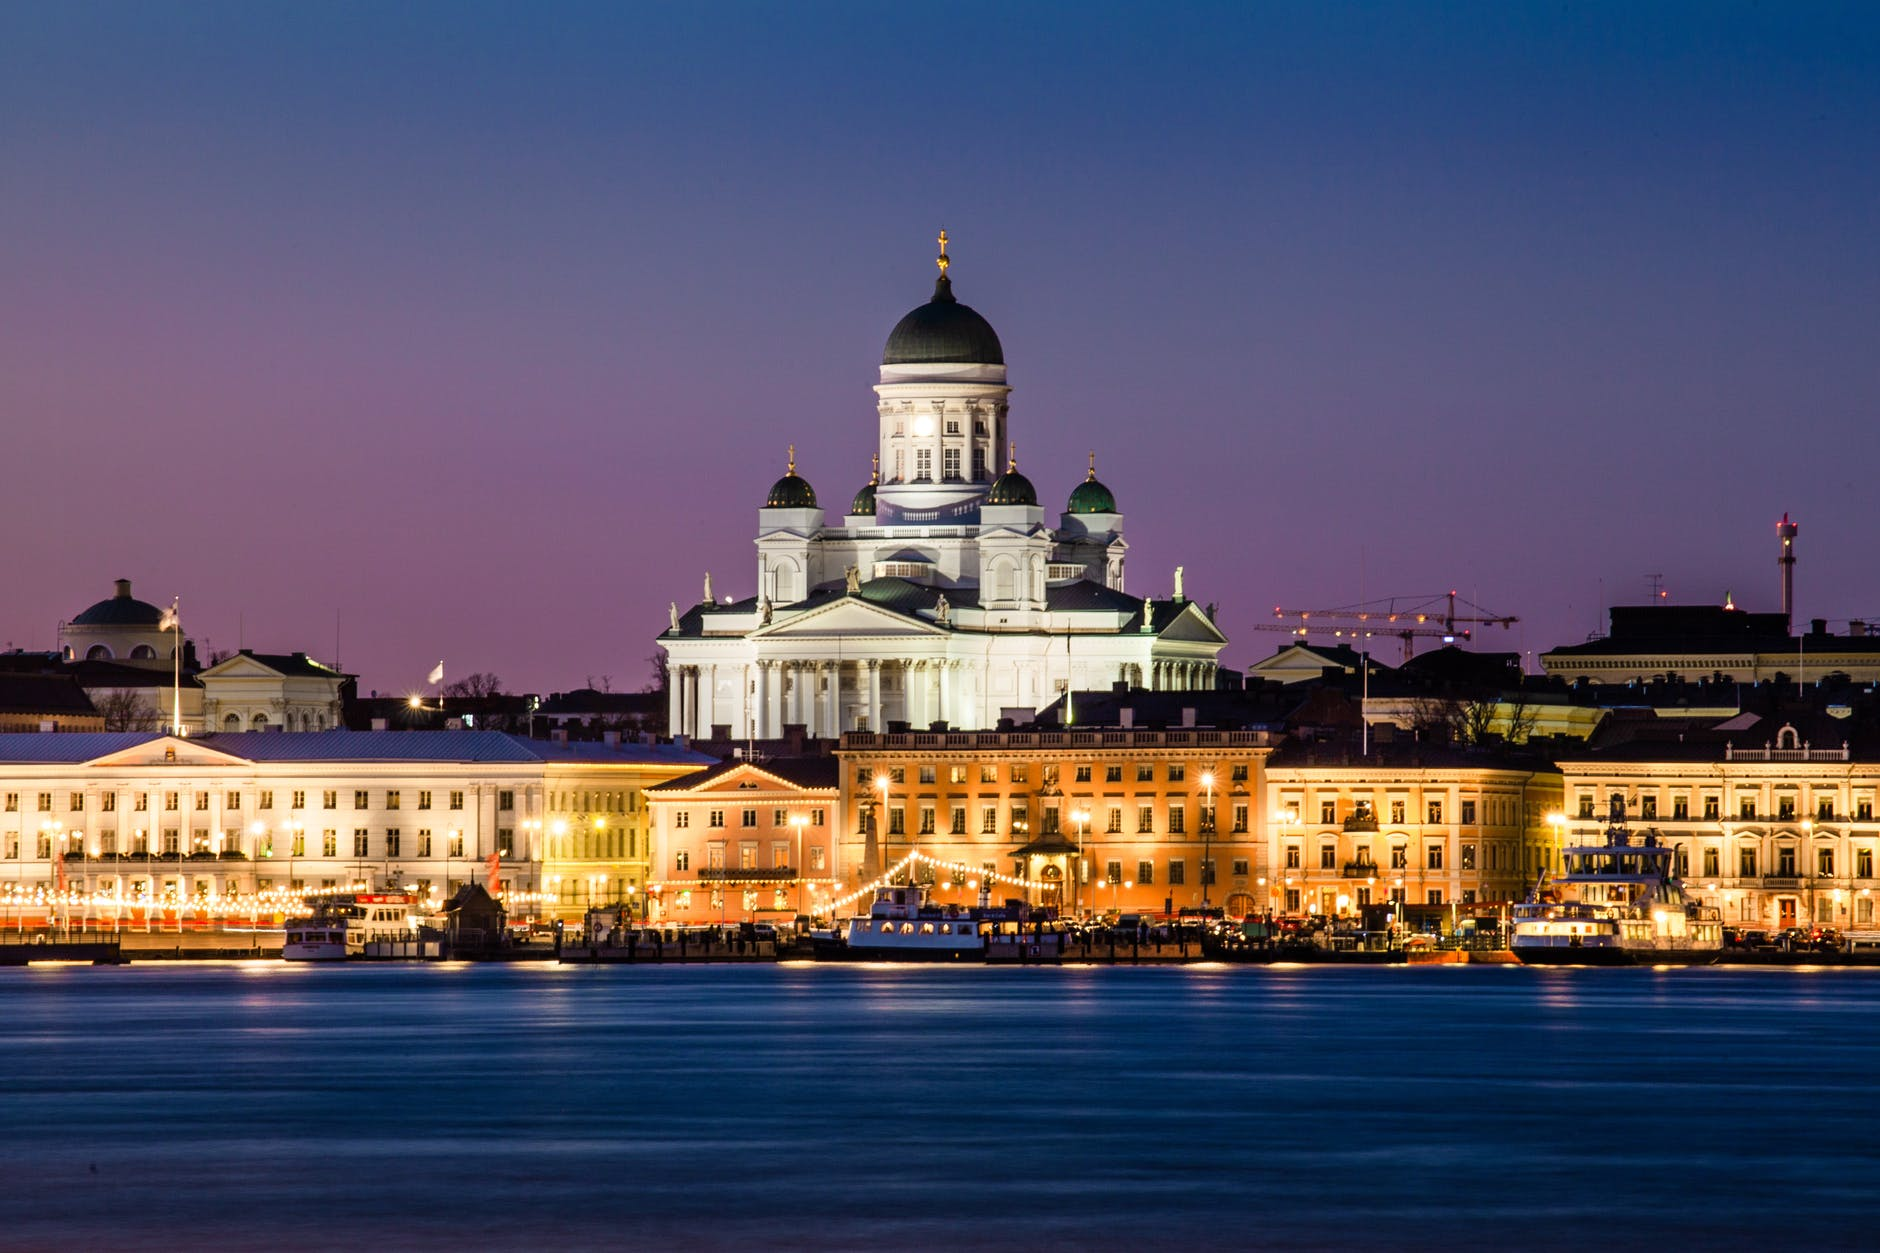 Finland Summer Travel Guide: Five Things to Do in Helsinki 6